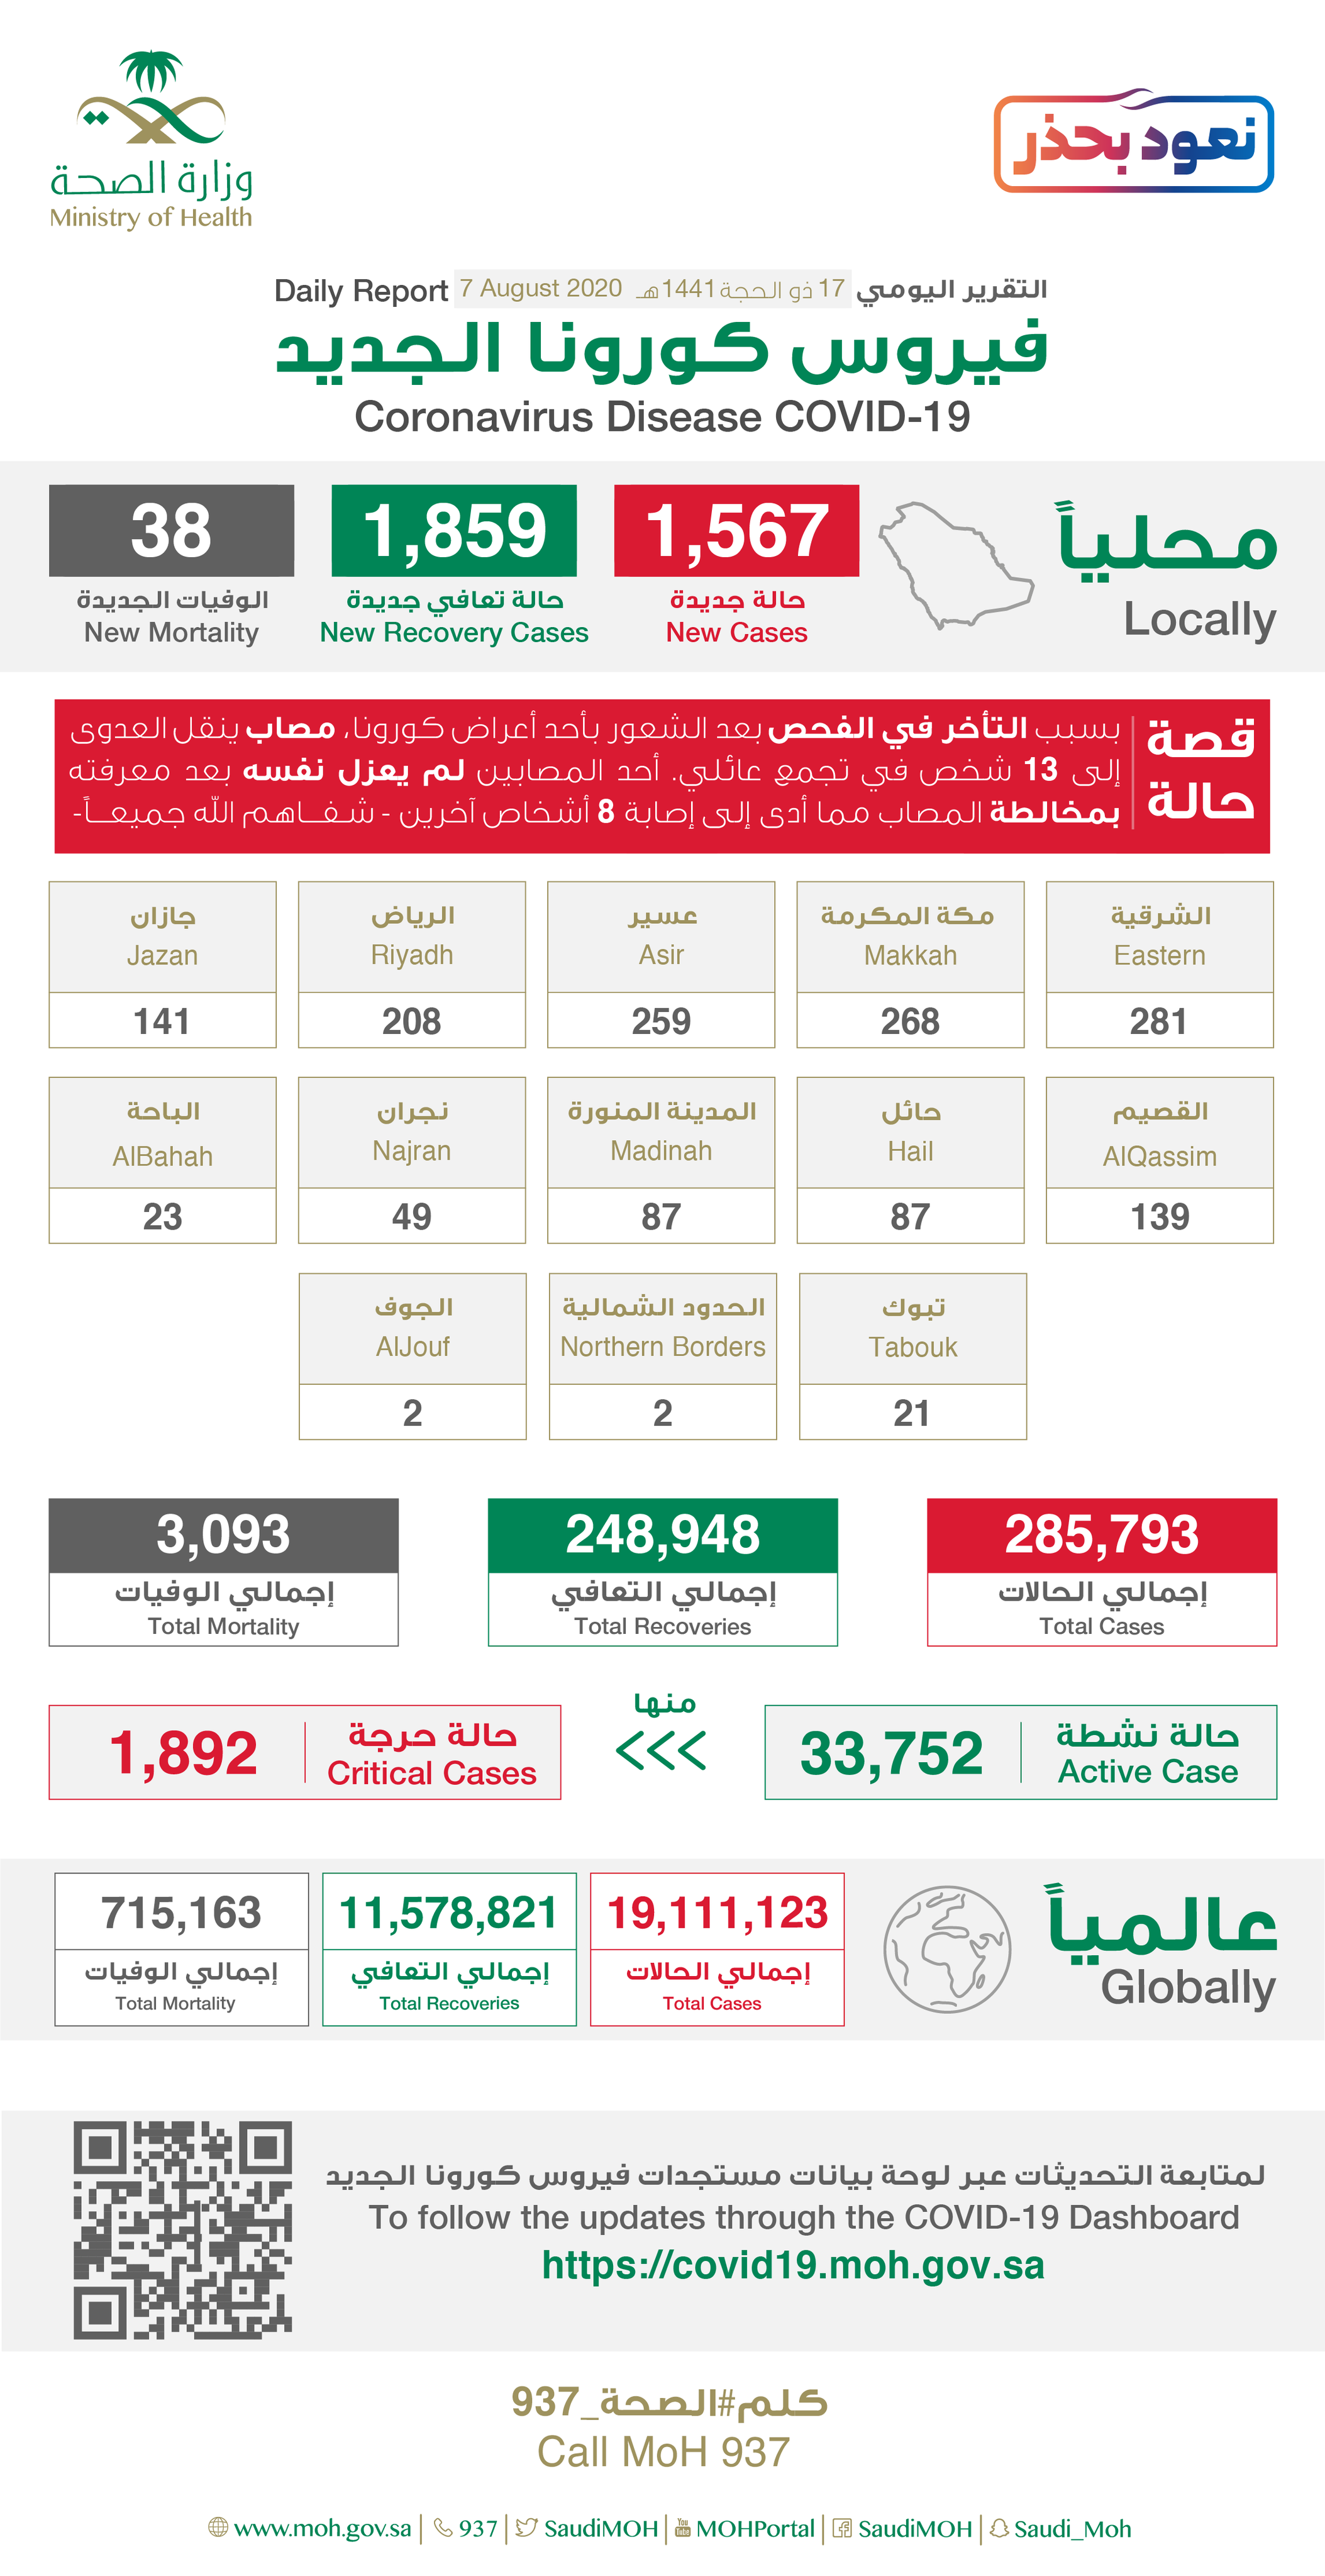 Saudi Arabia Coronavirus : Total Cases :285,793, New Cases : 1,567, Cured : 248,948 , Deaths: 3,093, Active Cases : 33,752